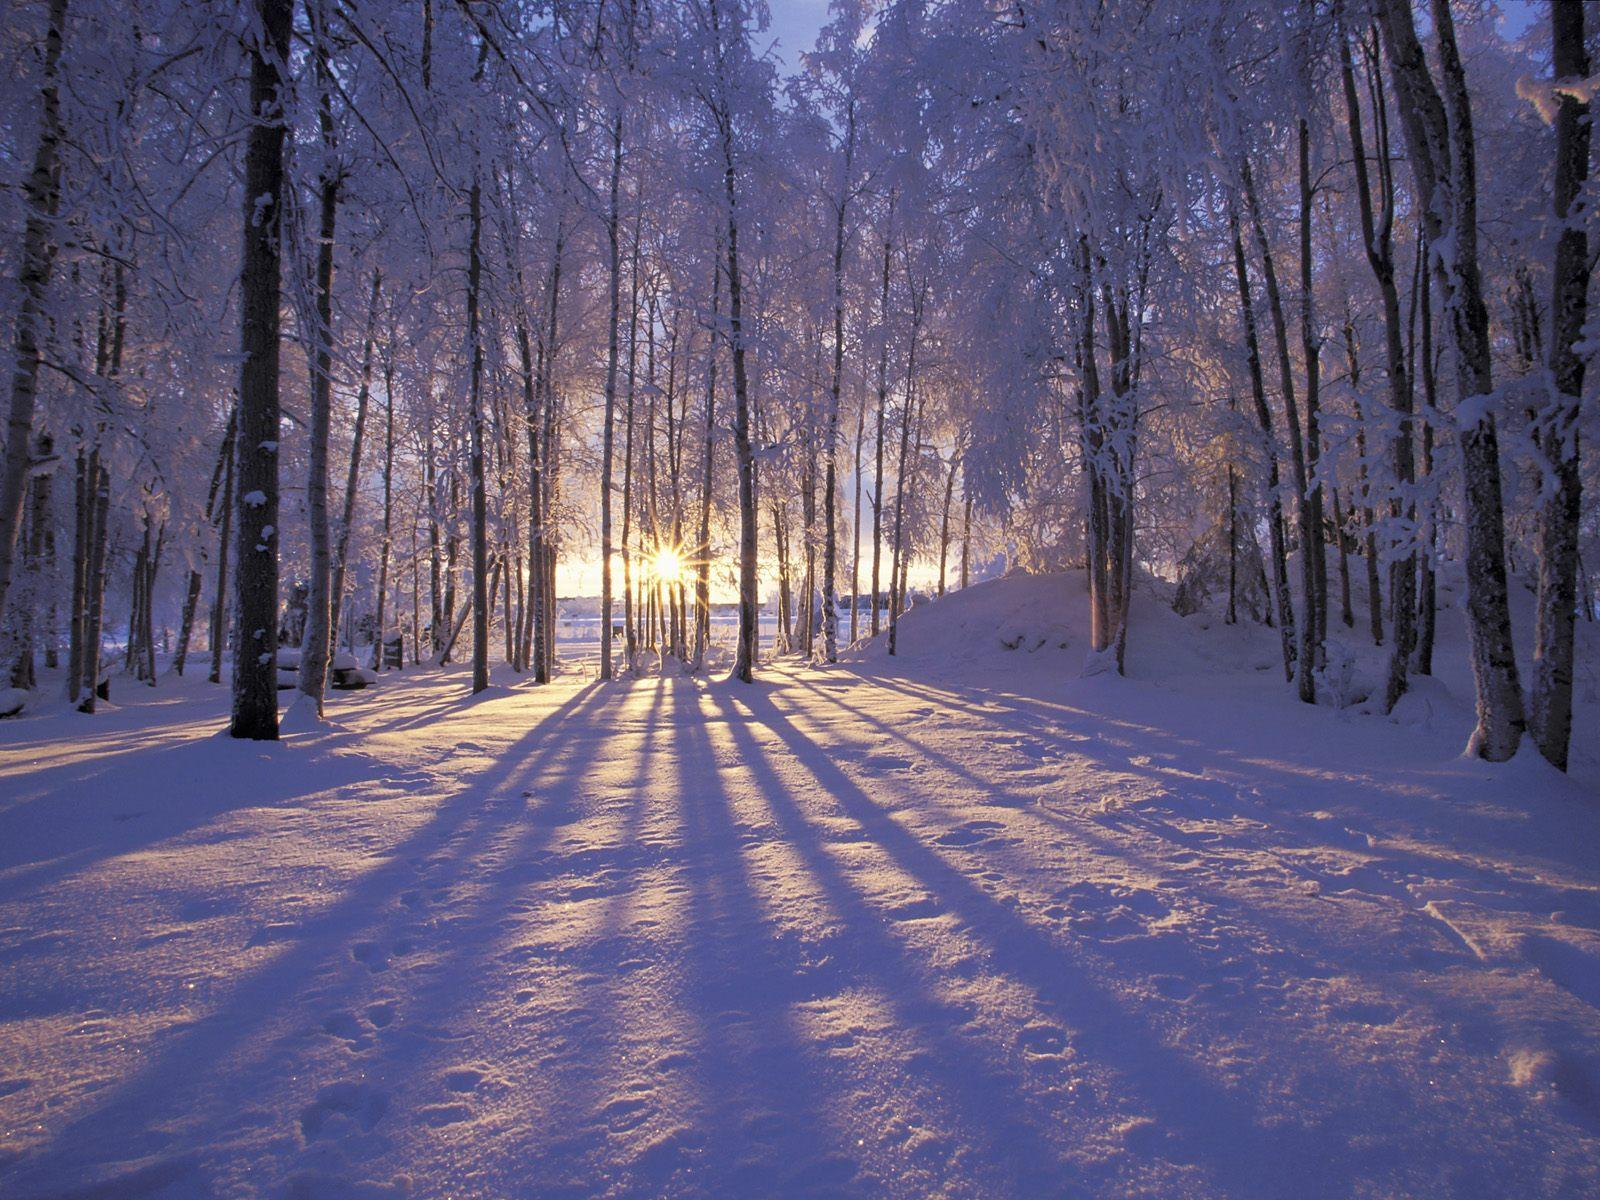 winter pictures for desktop backgrounds - wallpaper cave